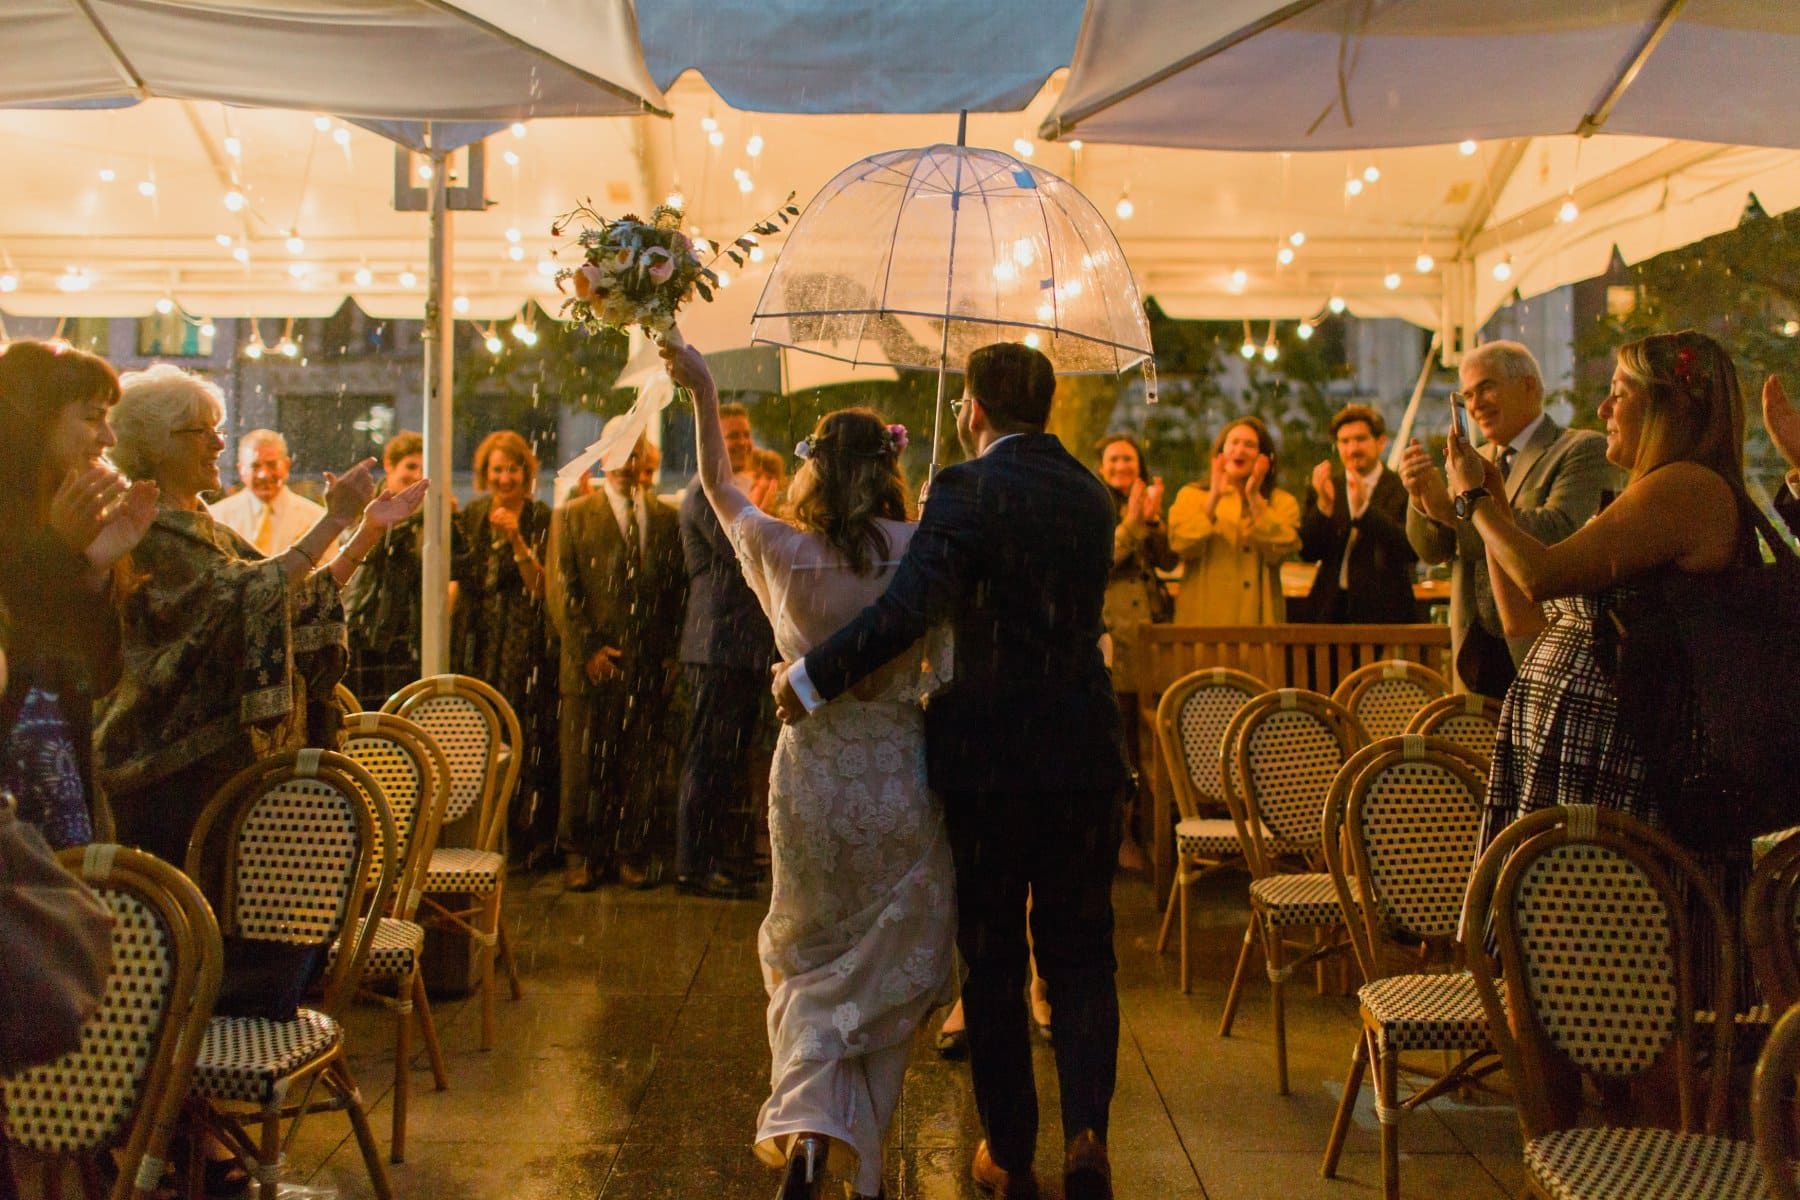 triumphant rainy recessional night time wedding ceremony Bryant Park Grill wedding